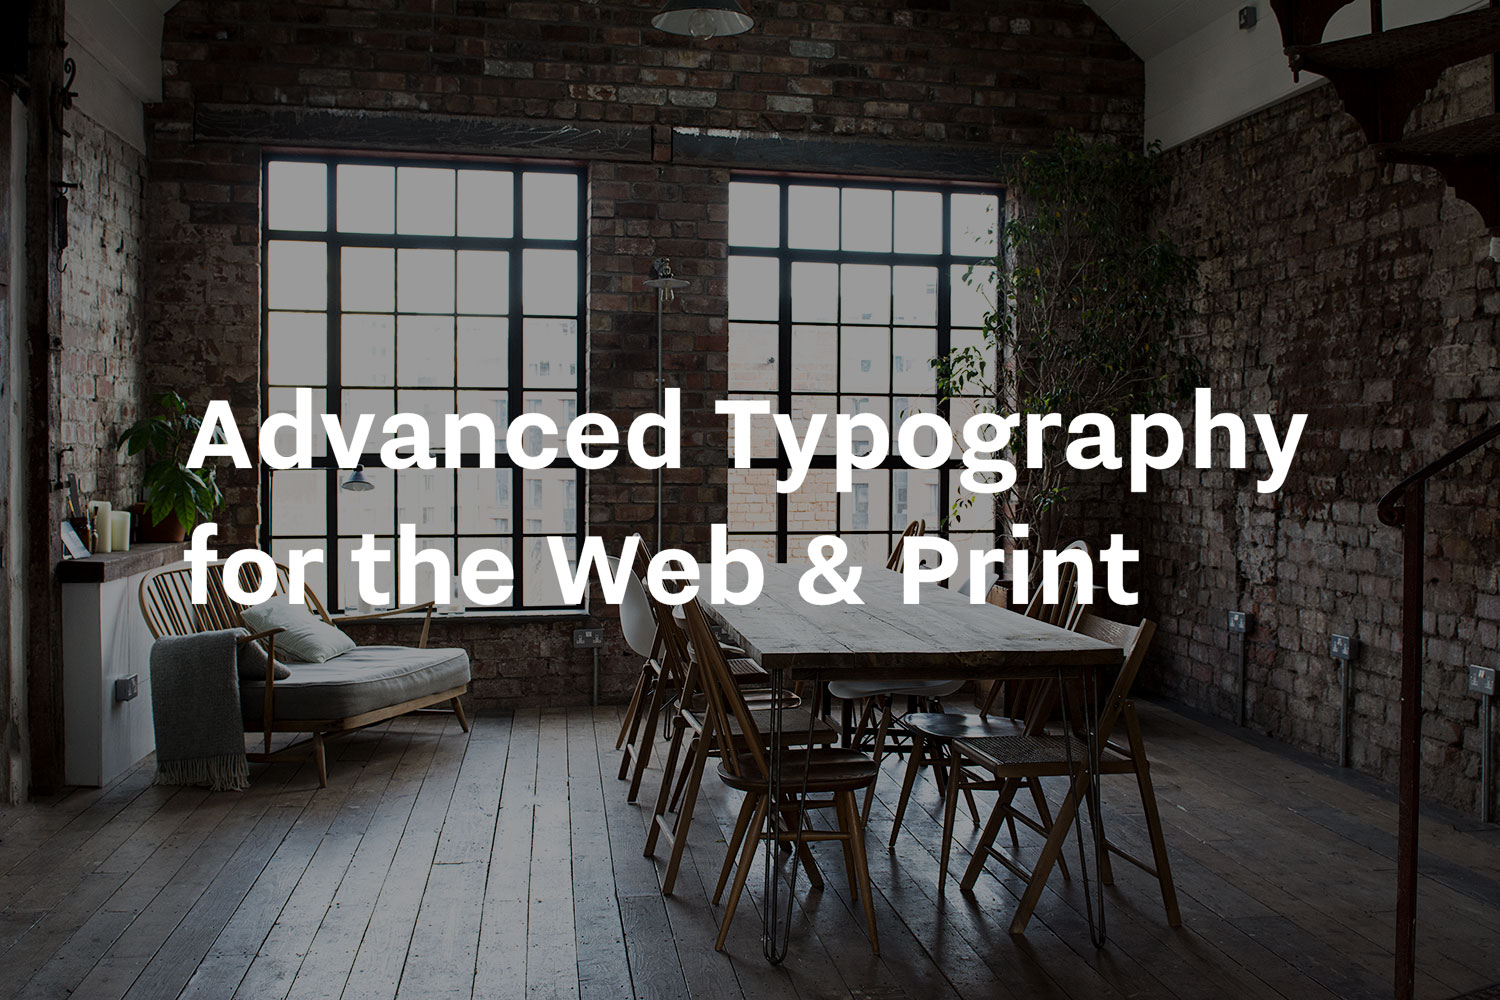 Article illustration for Advanced Typography for the Web & Print